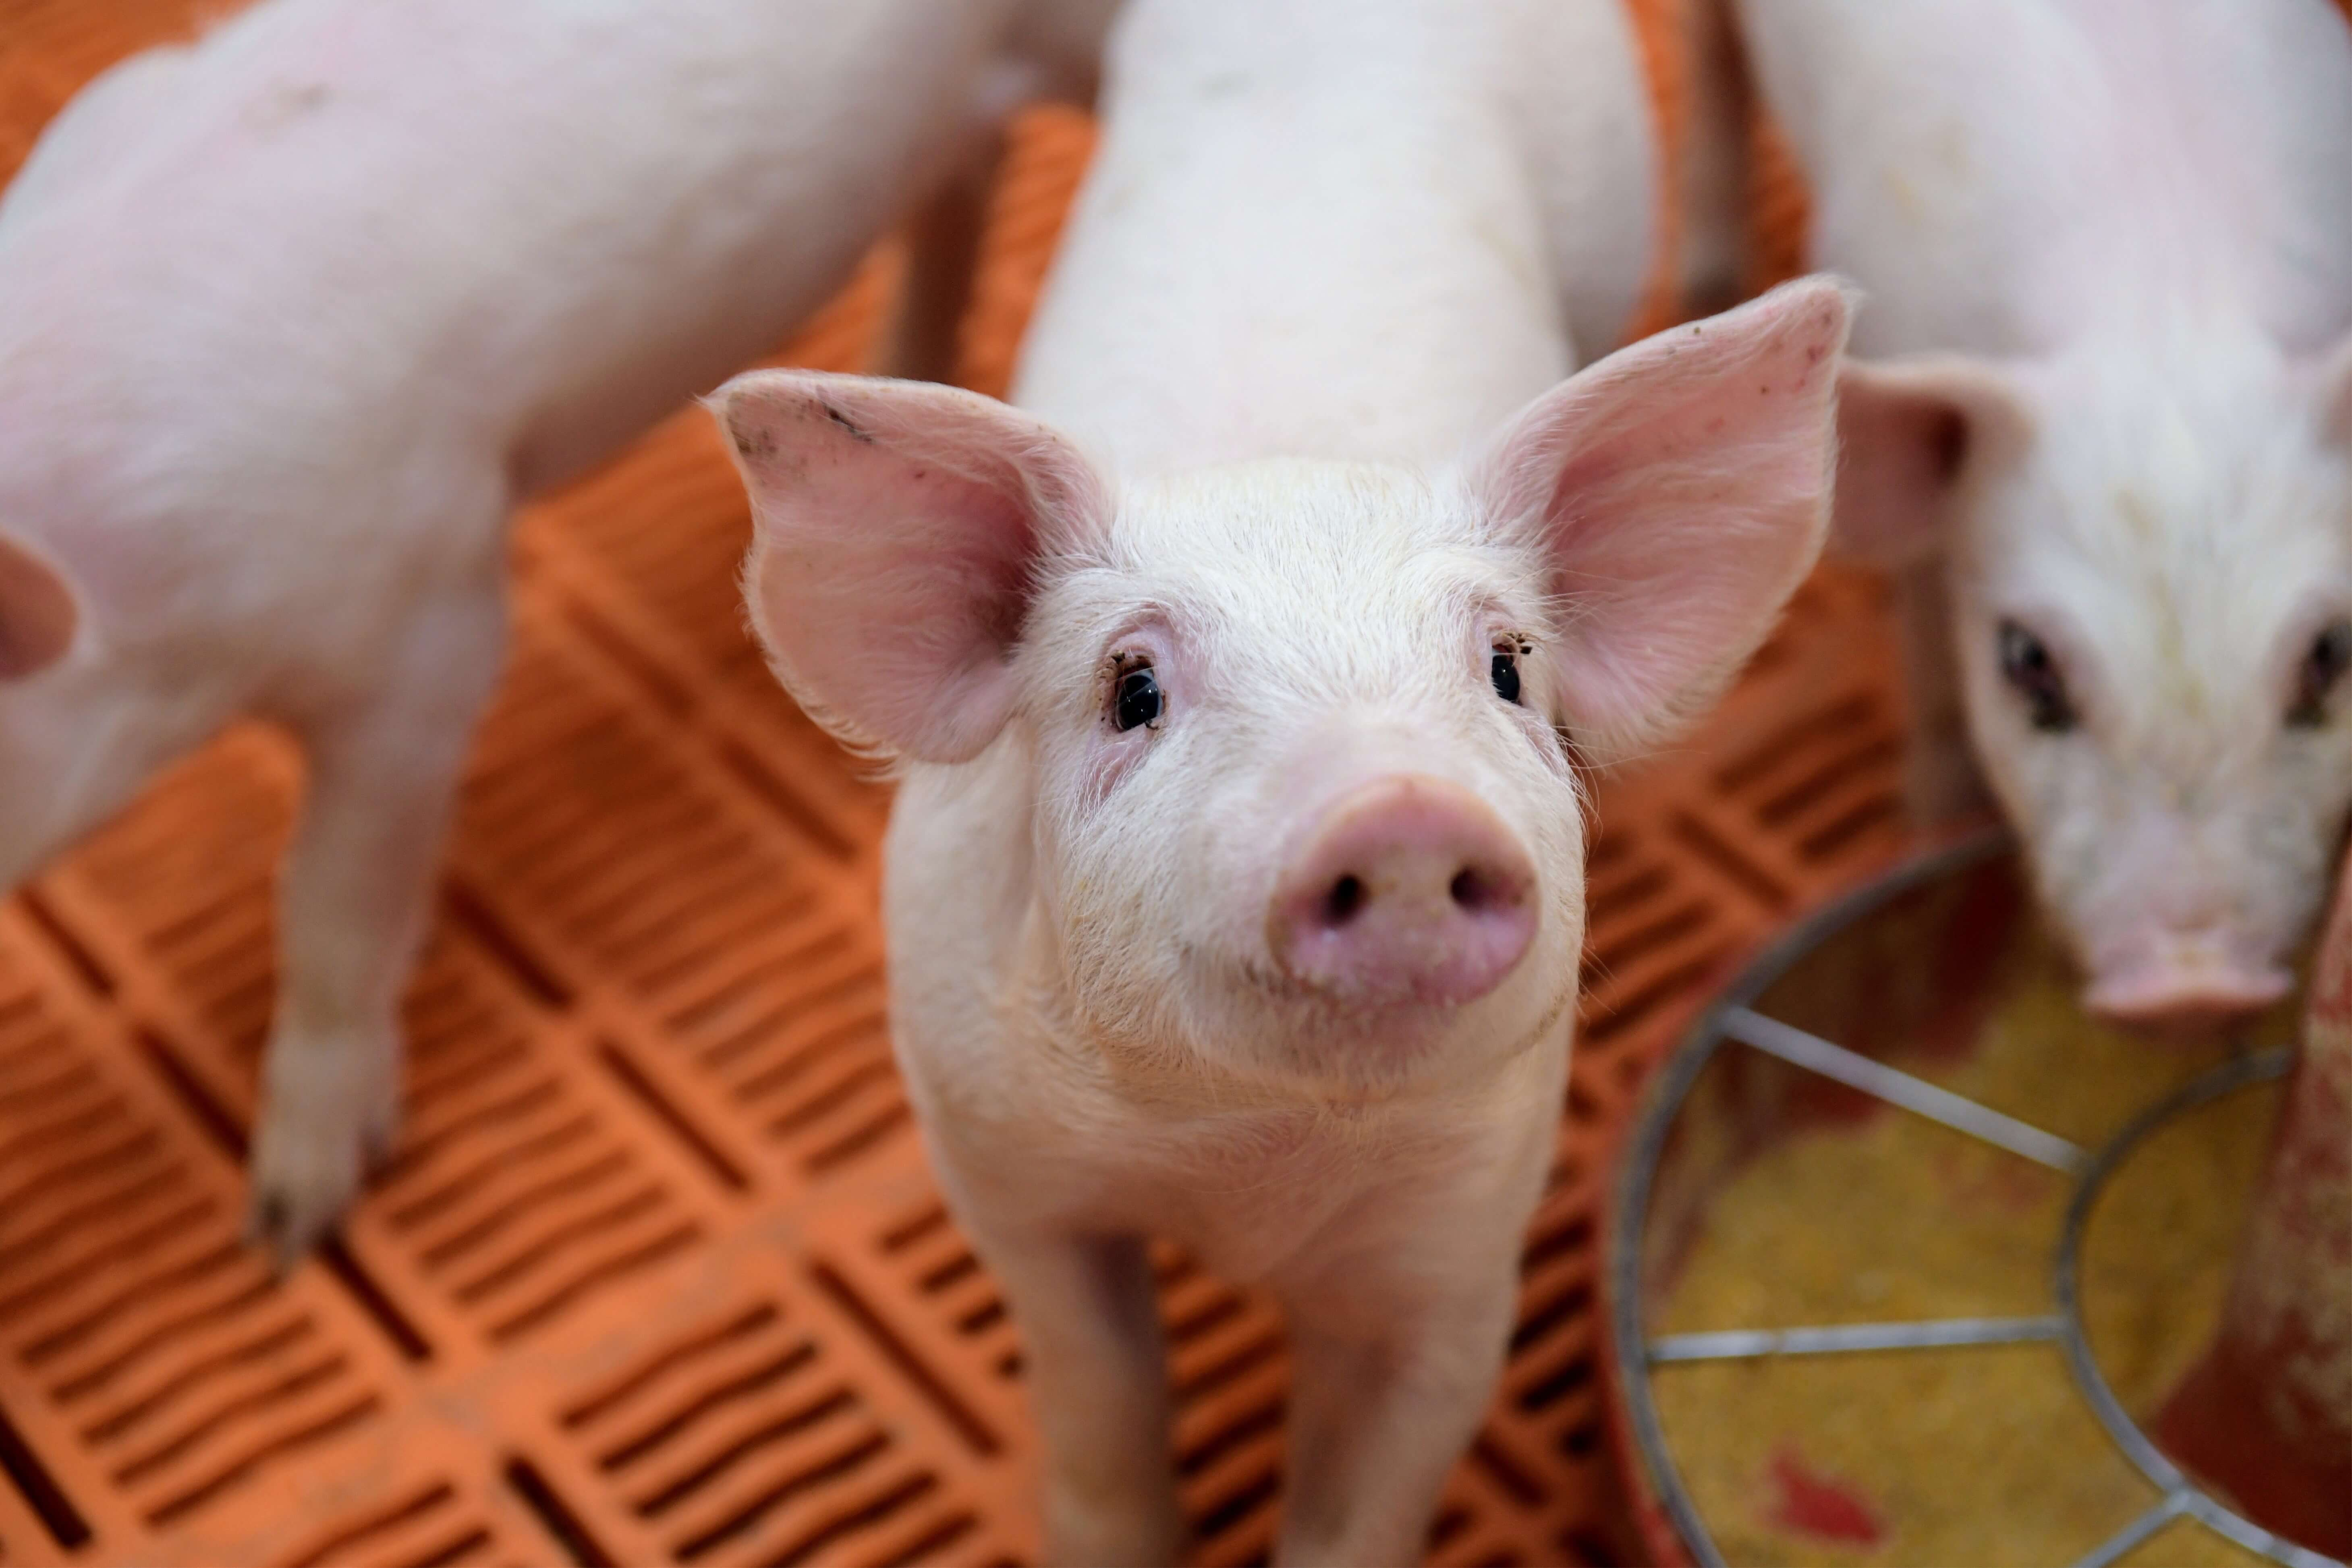 A piglet glances curiously up at the camera with two pi